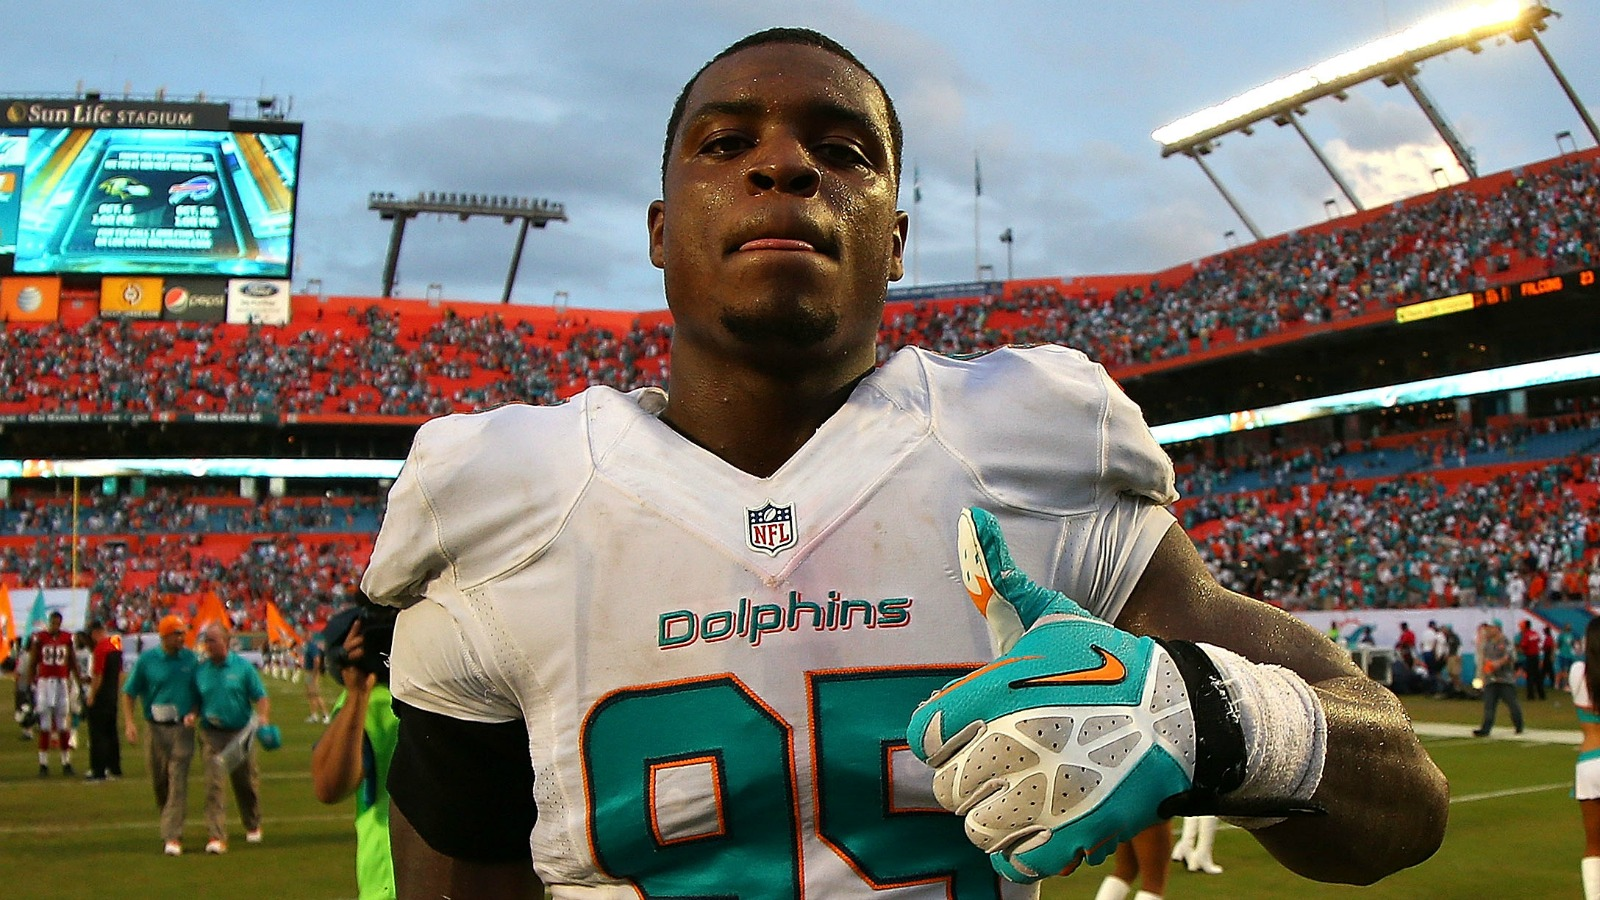 Dolphins DE Dion Jordan is reinstated on a conditional basis